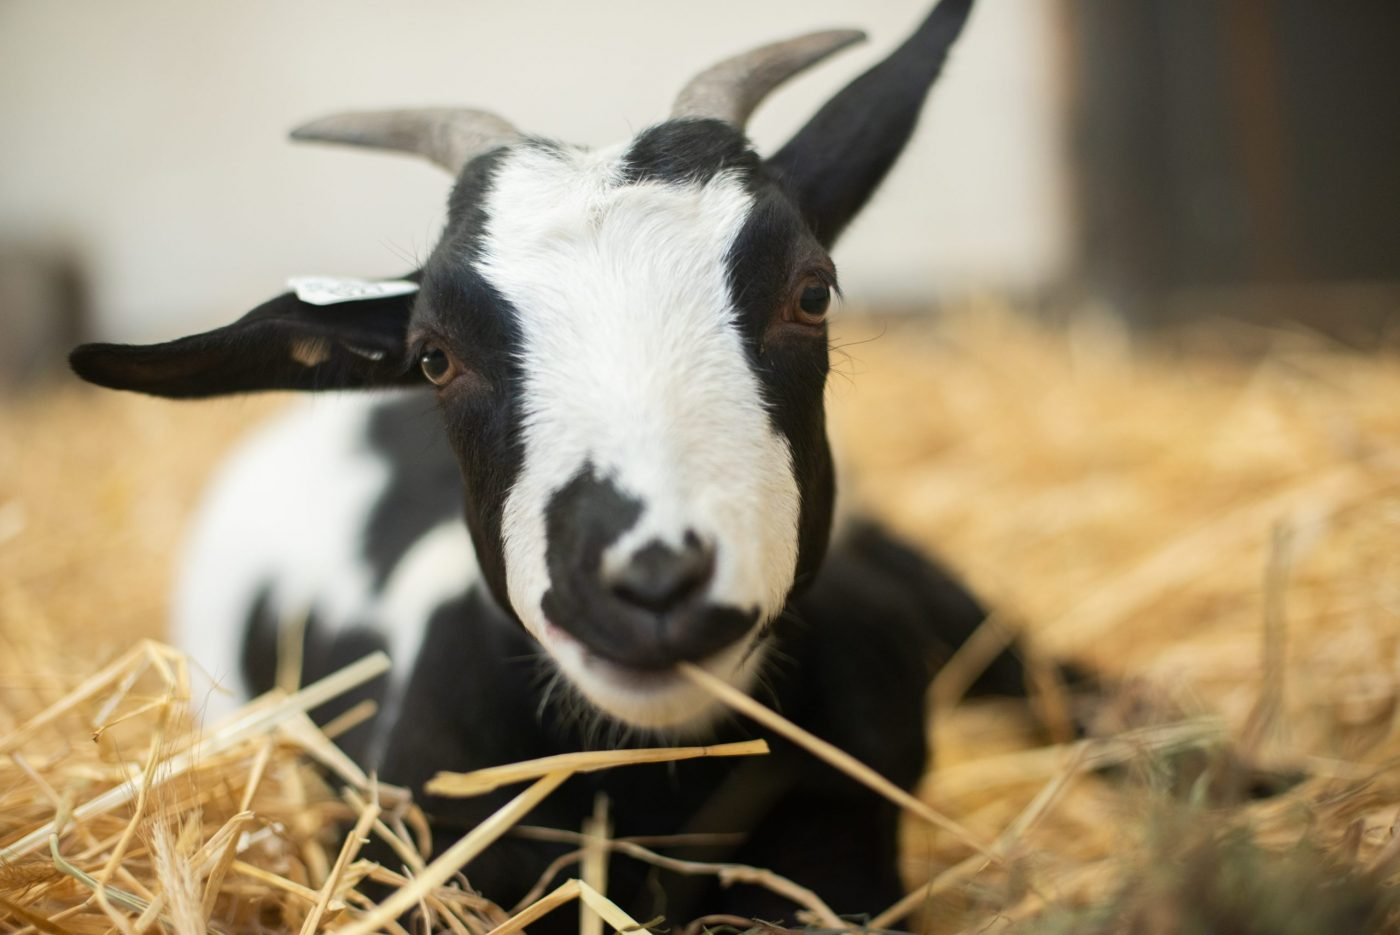 Wednesday goat at Farm Sanctuary